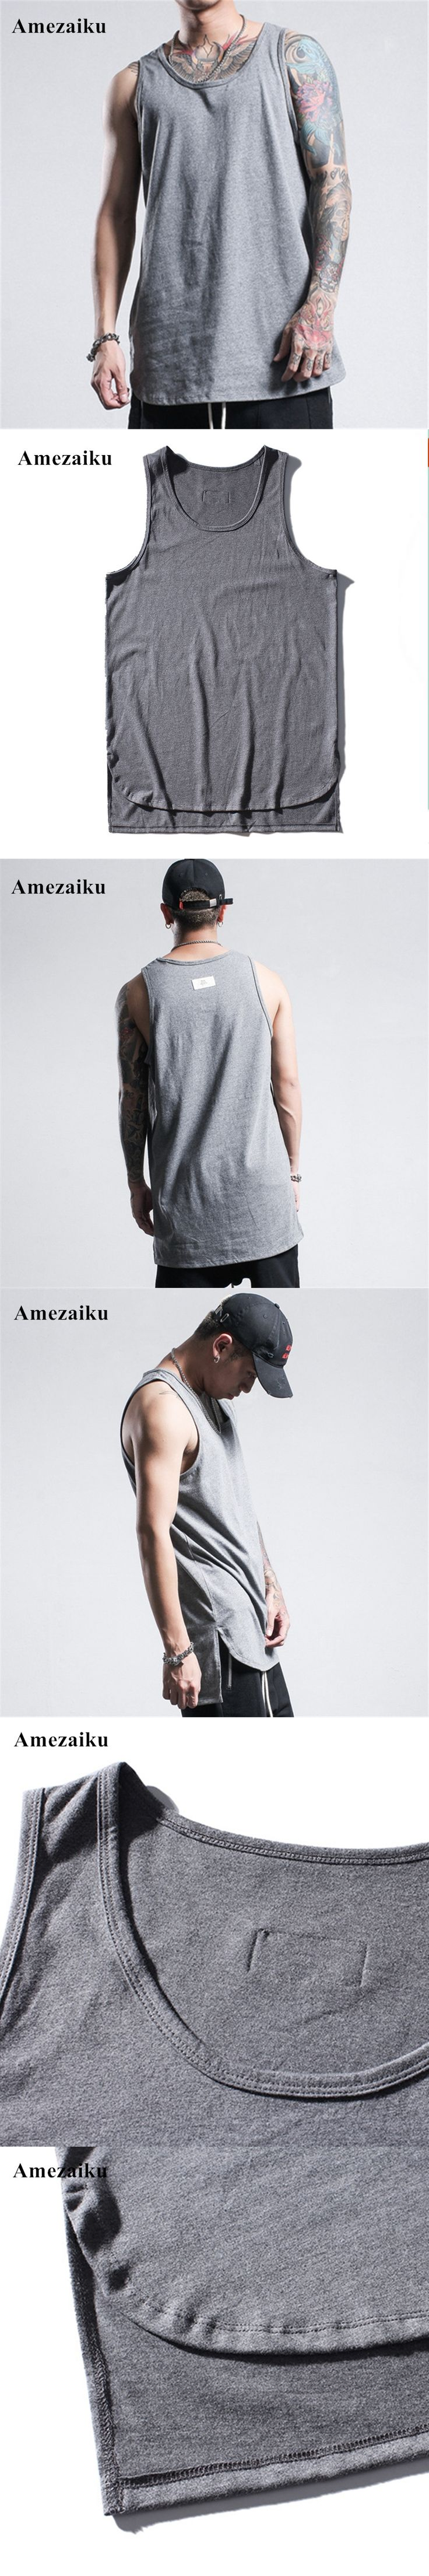 2017 New Brand mens bodybuilding tank tops cotton men Sleeveless t shirts Casual beach vest Men Fitness Casual Clothing